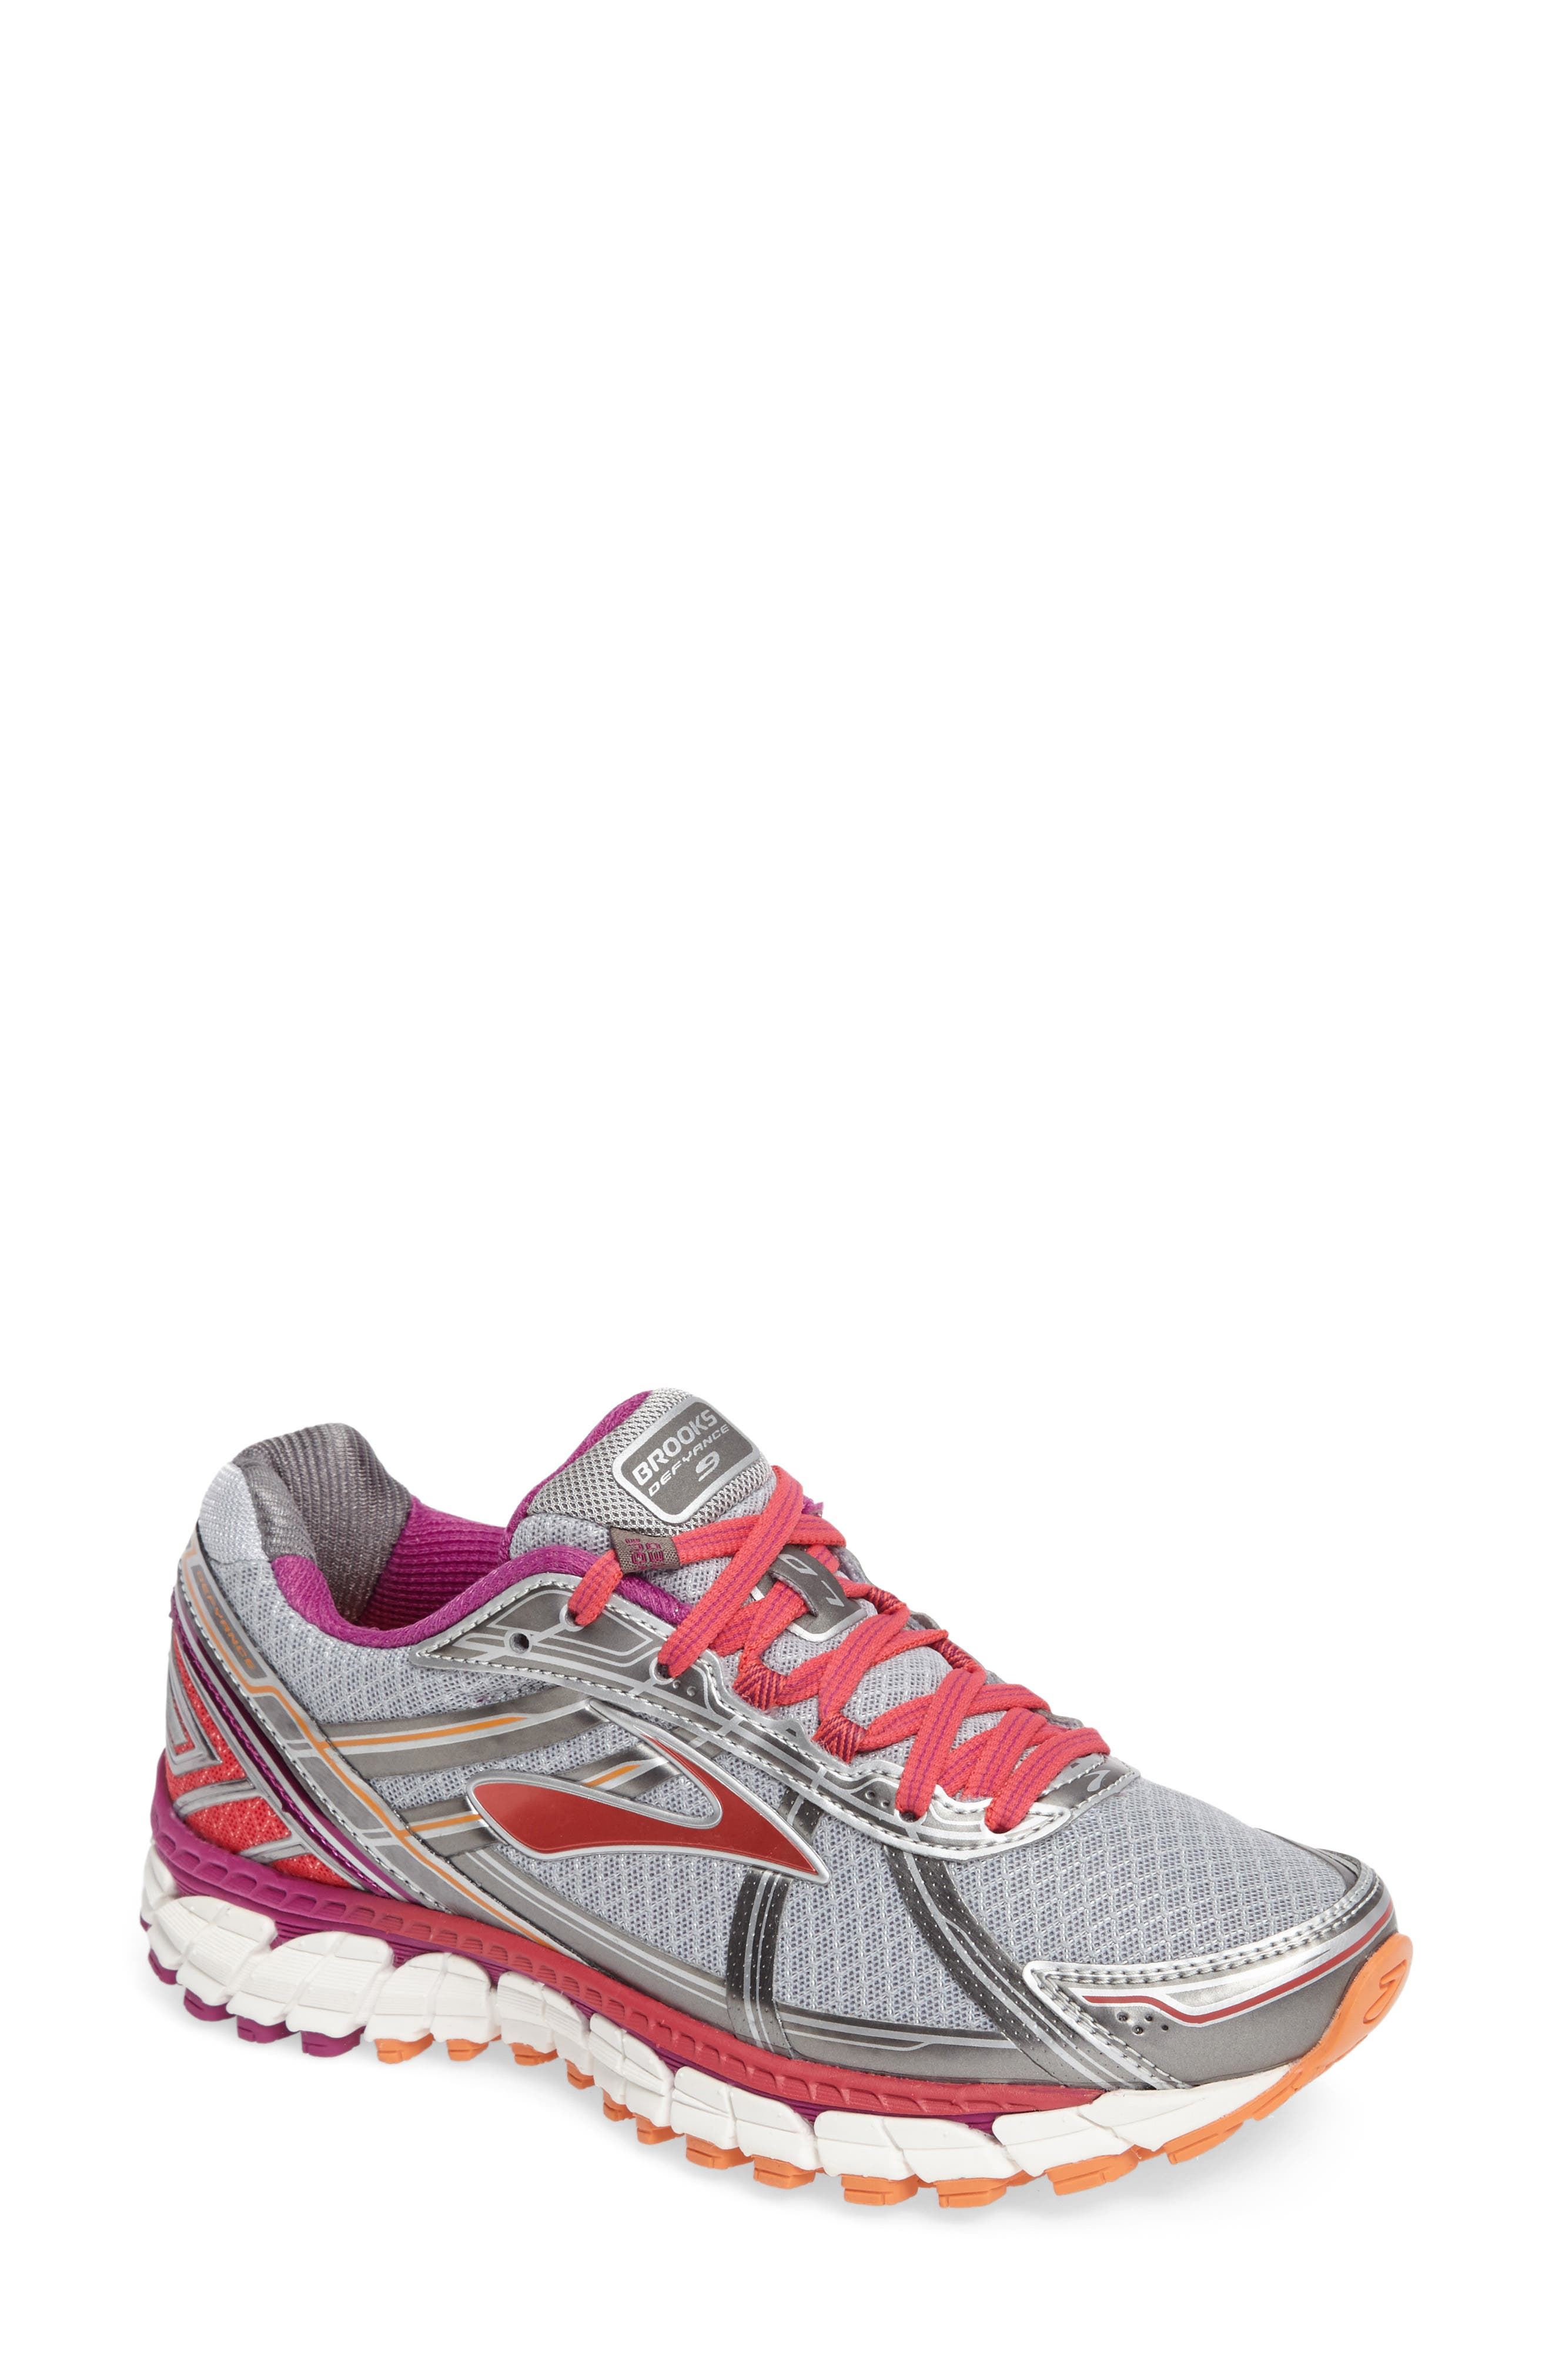 Alternate Image 1 Selected - Brooks Defyance 9 Running Shoe (Women)